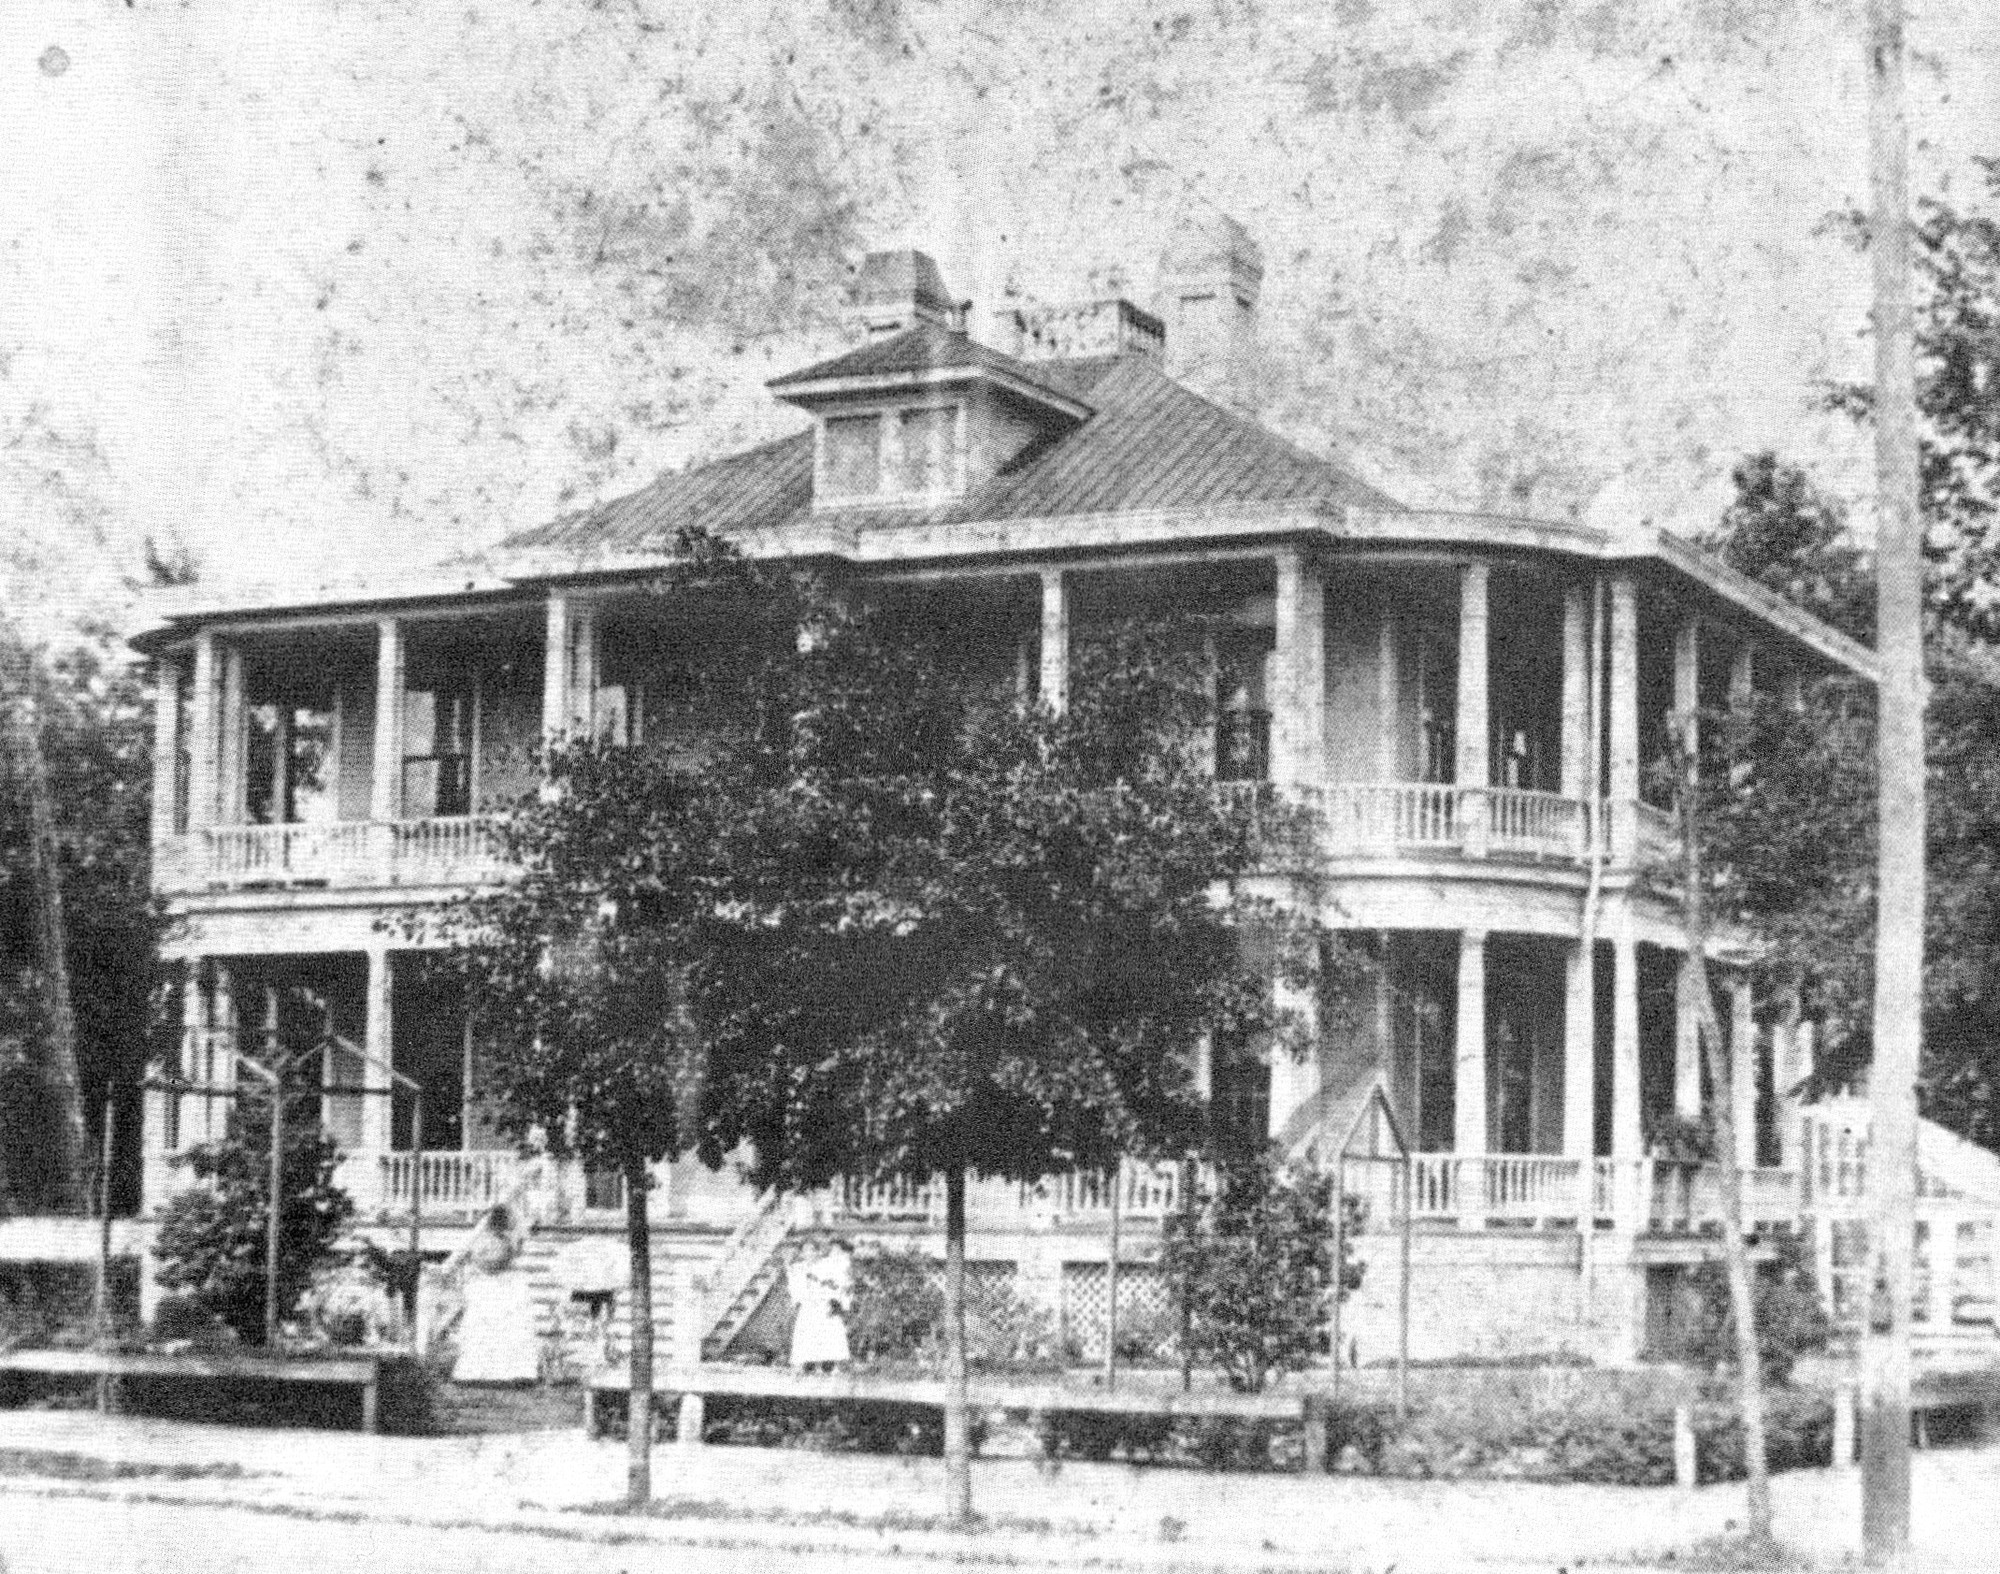 The Monaghan home once house the Marion Hotel.